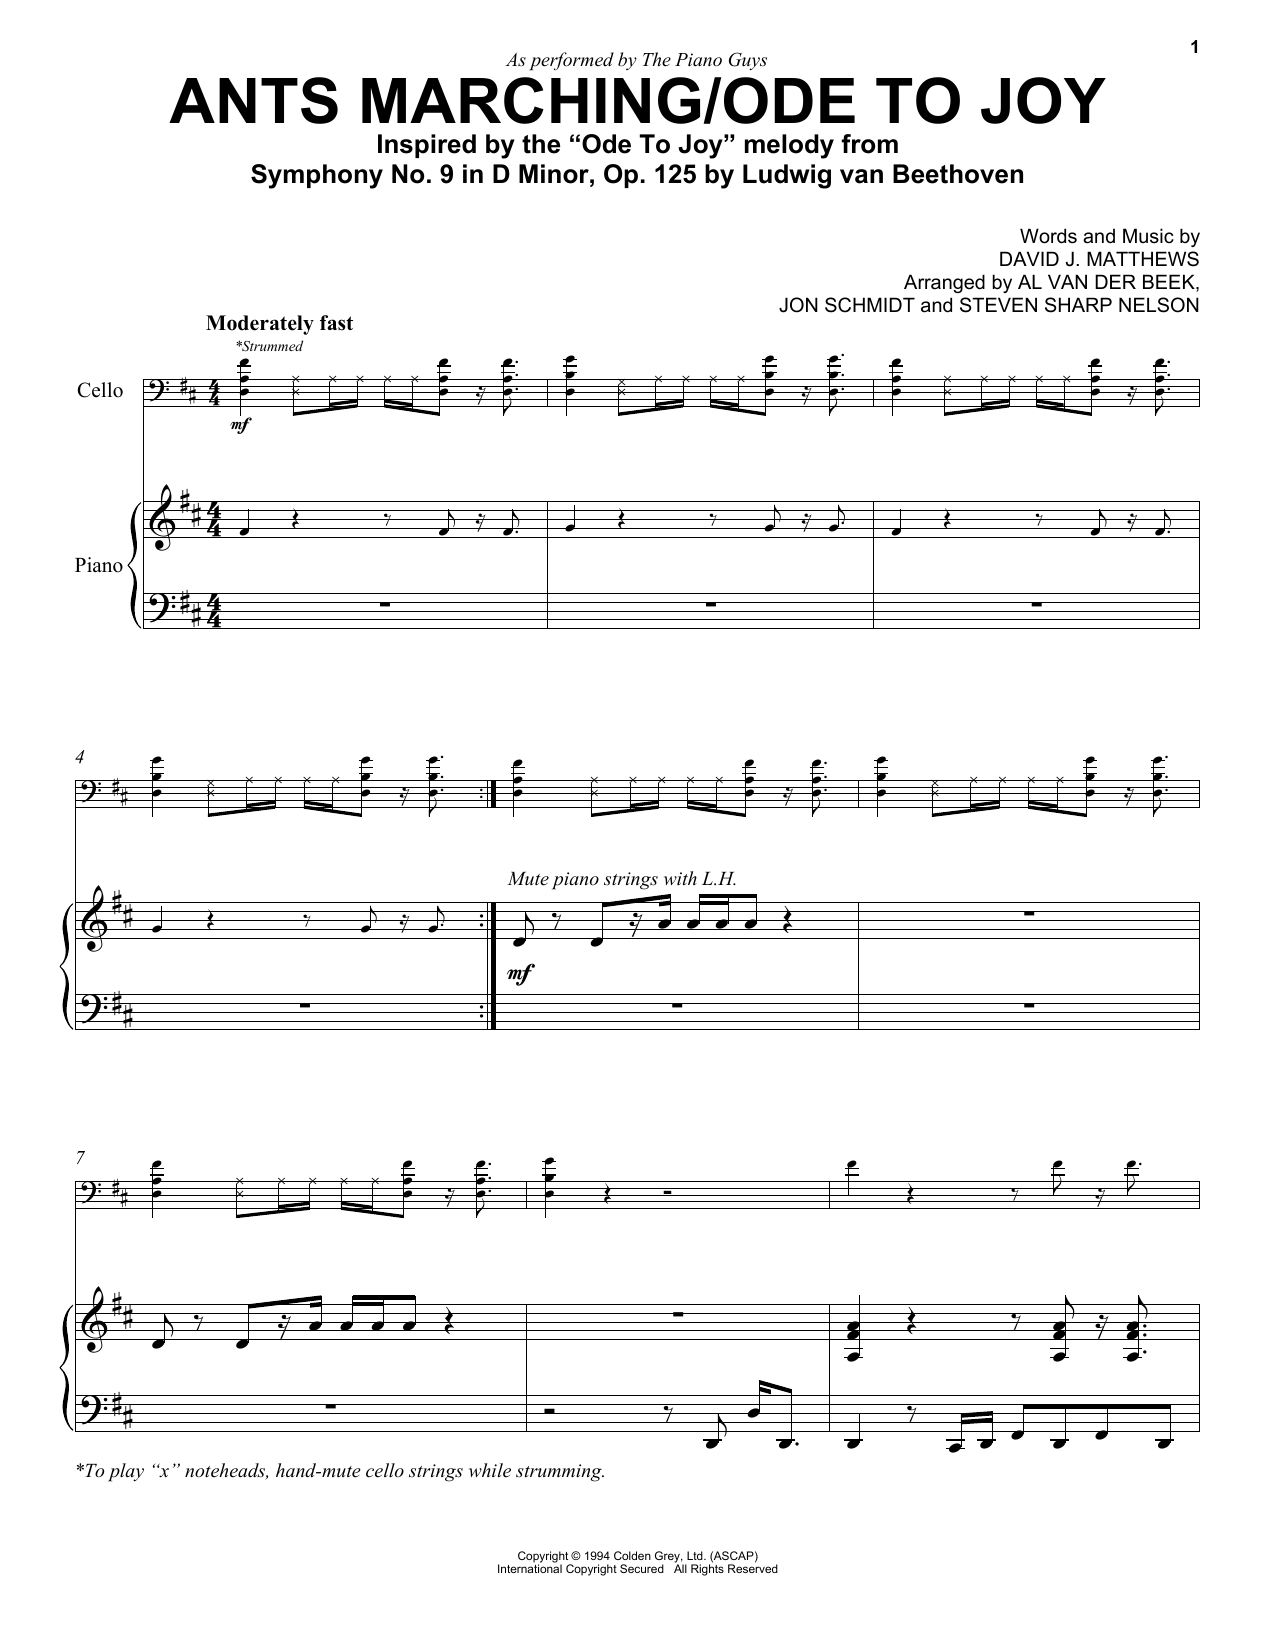 The Piano Guys Ants Marching/Ode To Joy Sheet Music, Notes & Chords